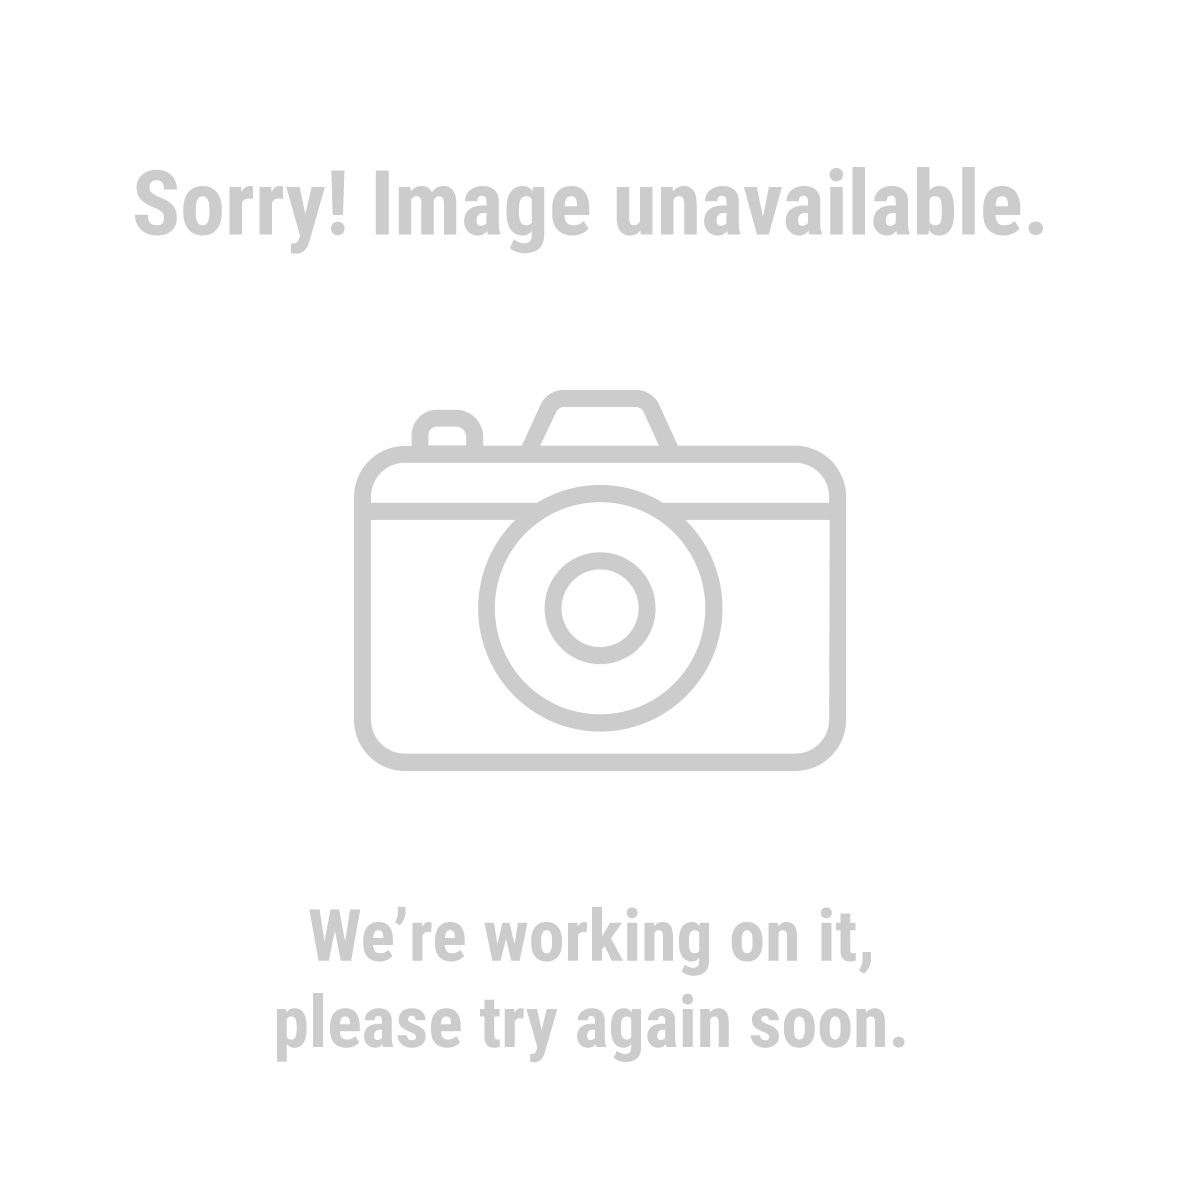 Haul-Master 61167 1000 Lb. Capacity Polypropylene Mover's Dolly